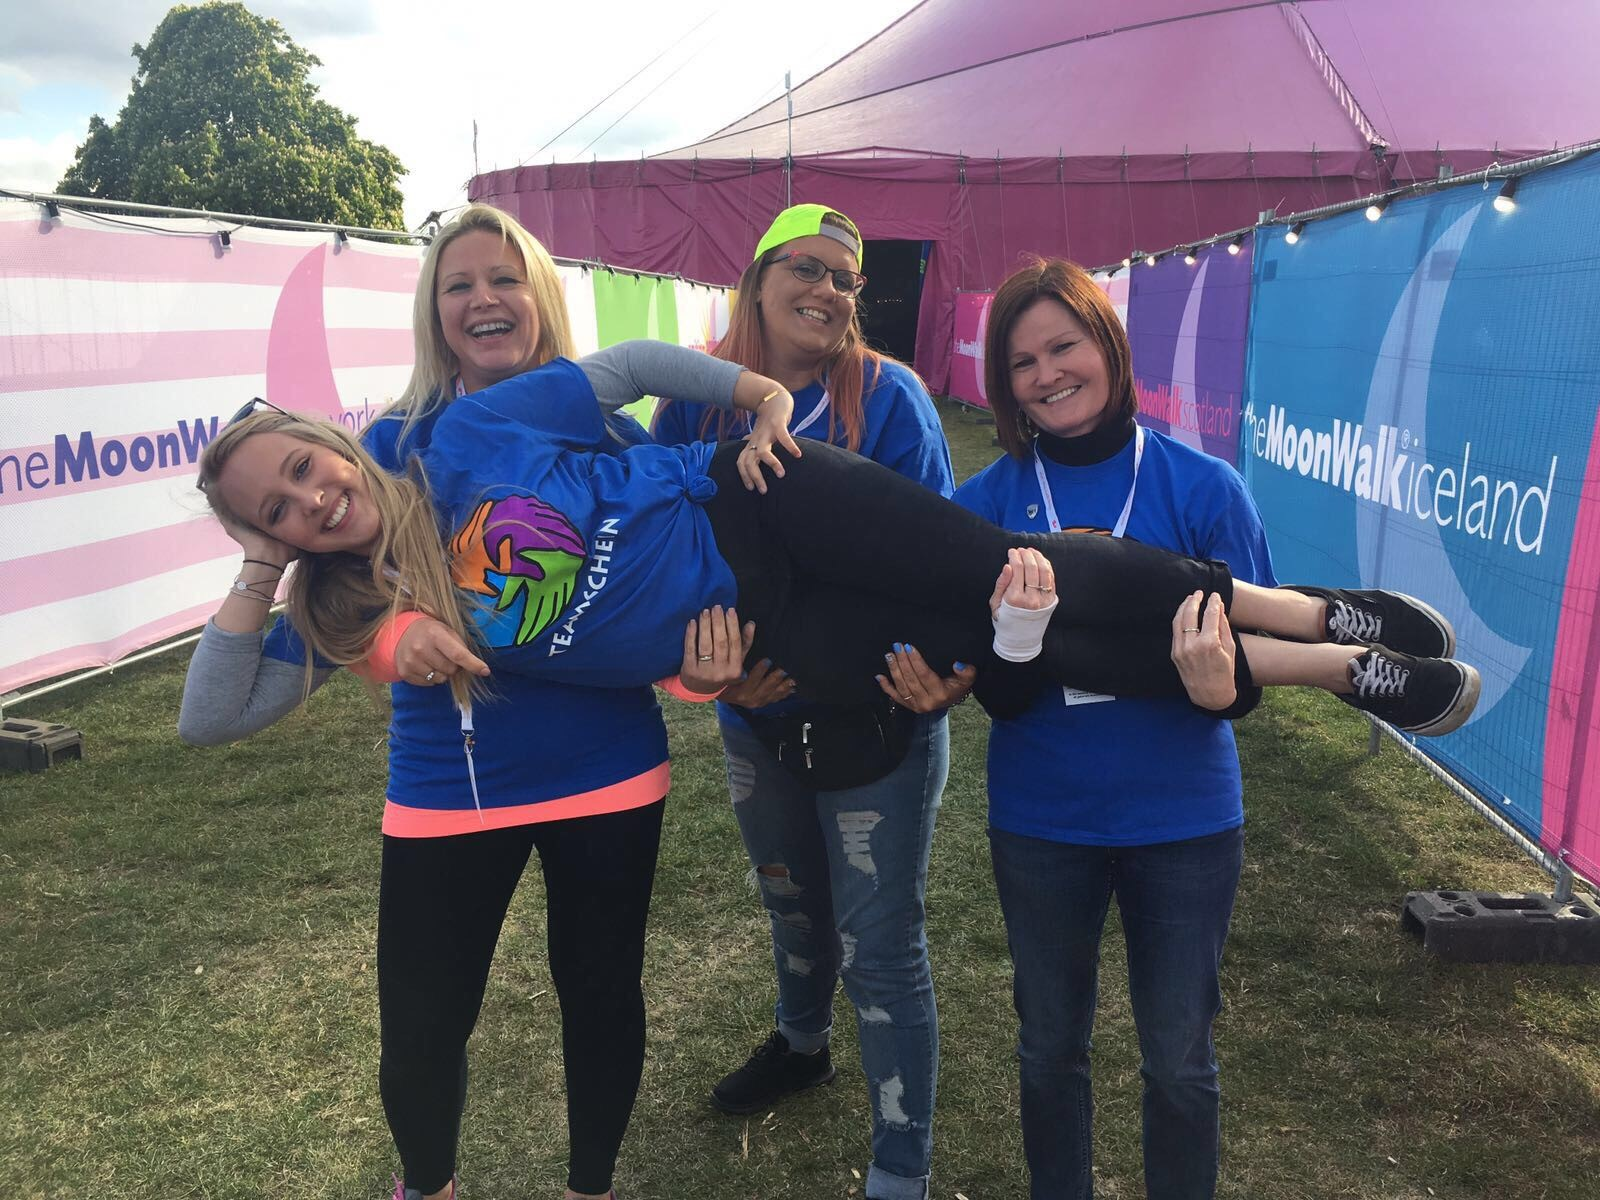 Henry's Angels Continue To Support The MoonWalk London To Raise Awareness Of Breast Cancer.